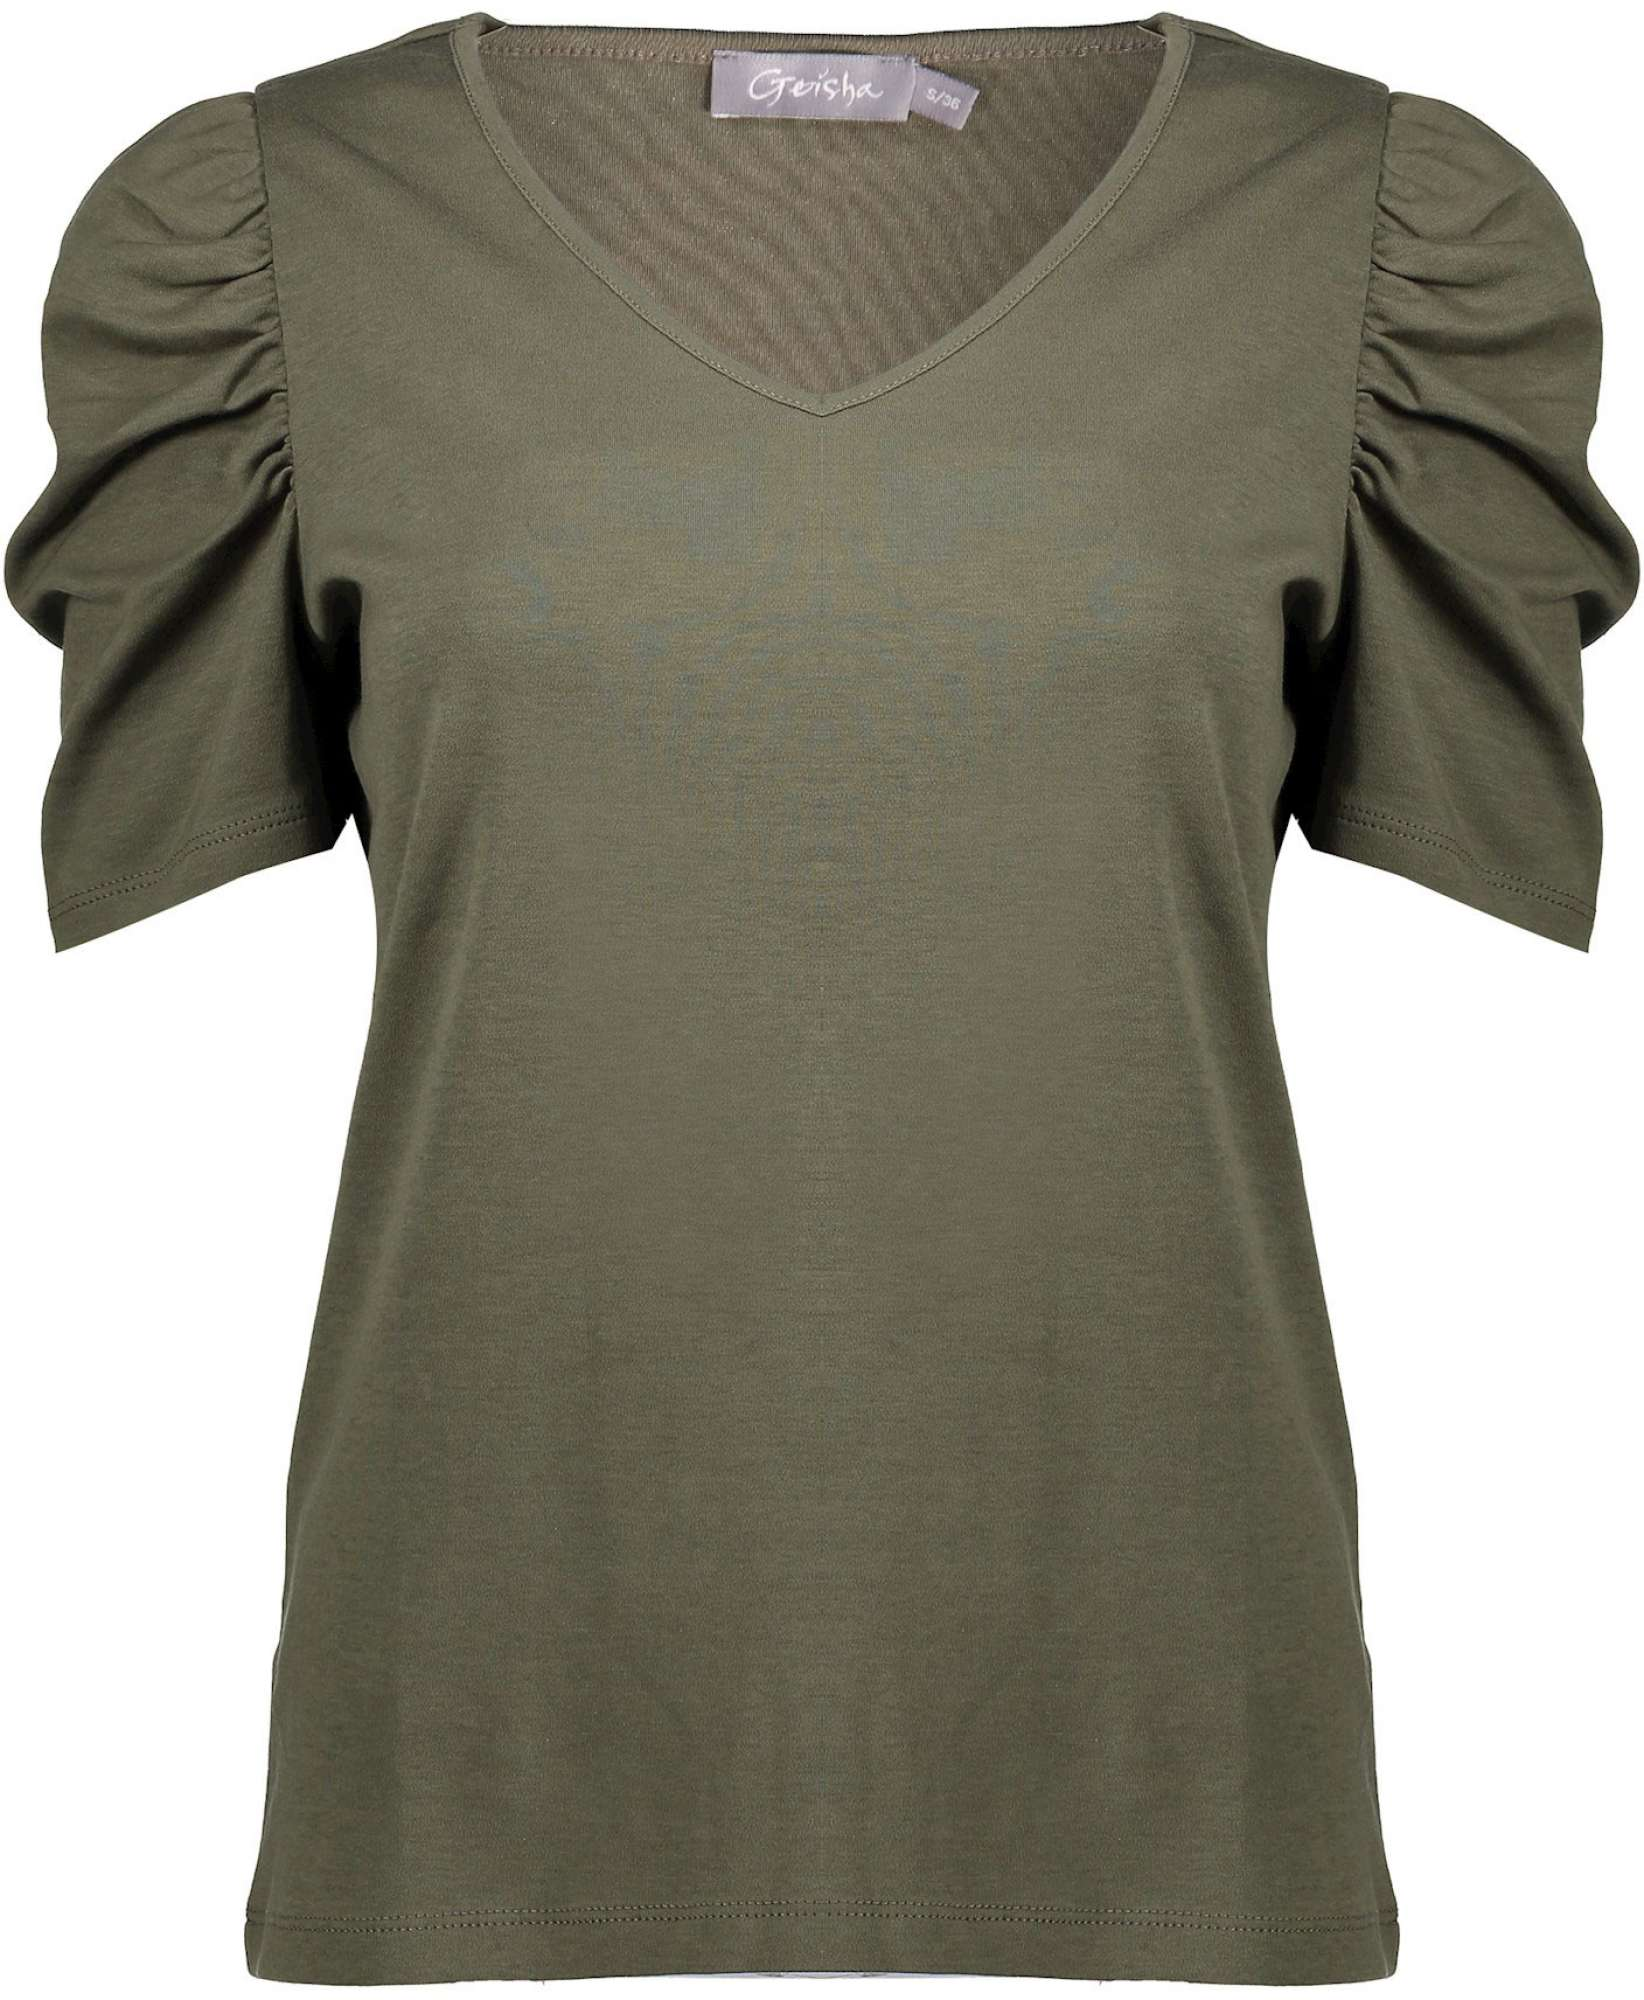 Top-t-shirt cotton army